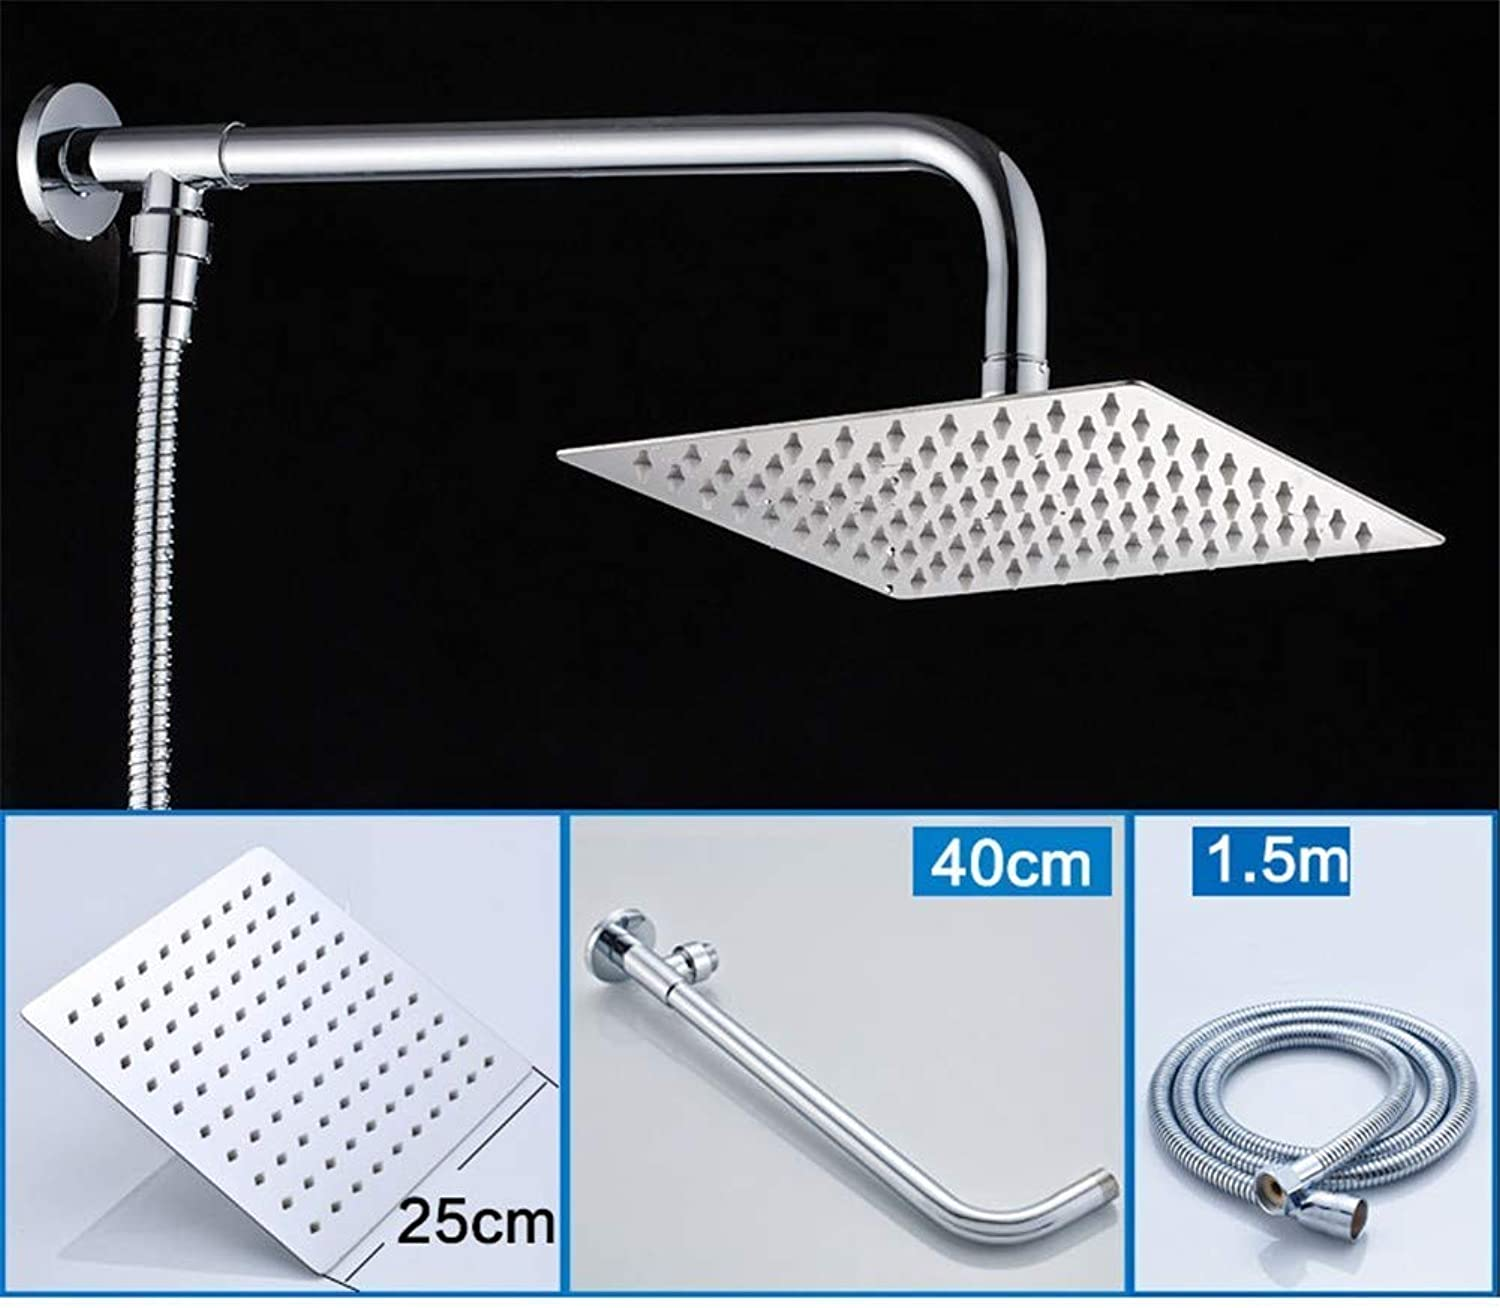 Oudan Taps Wall Mount 10 Inch Rainfall Round Shower Head With Shower Arm Shower Hose Stainless Steel Chrome Finished (color   -, Size   -)